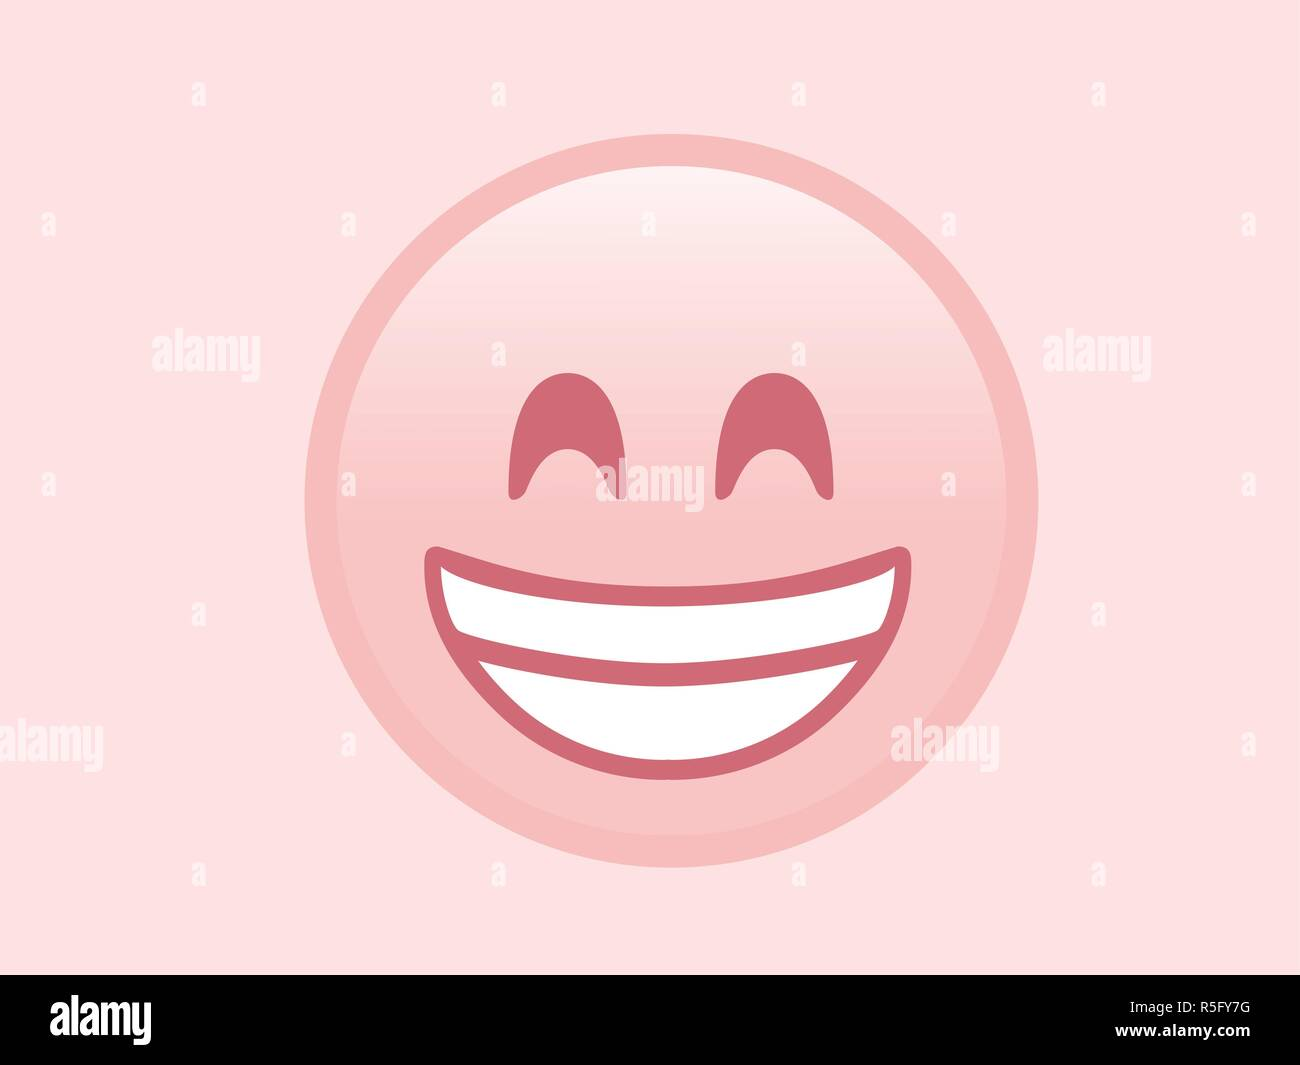 The isolated pink smiling face with the white teeth icon - Stock Vector